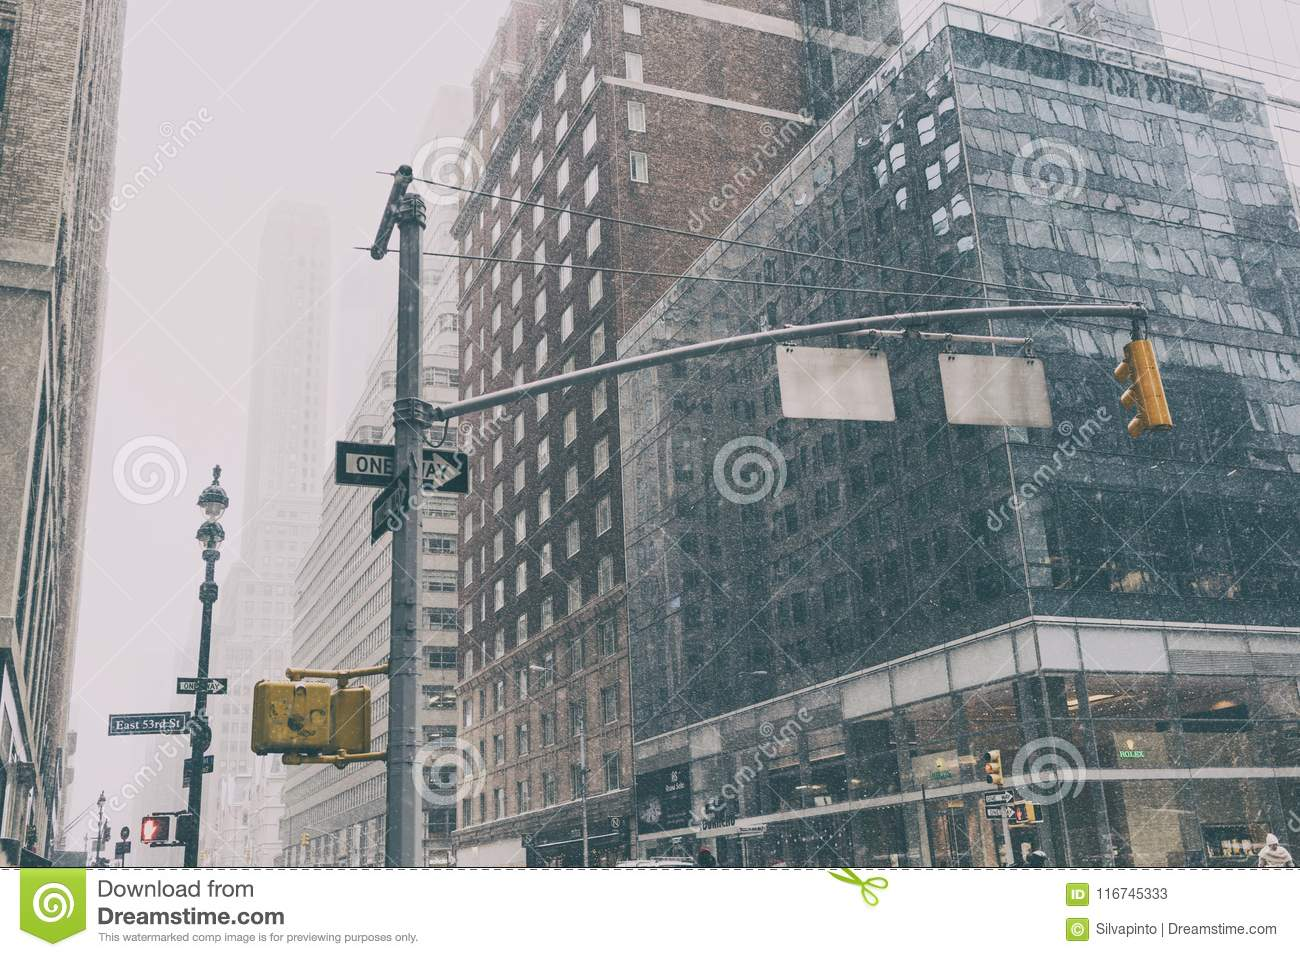 31 DEZ 2017 - NEW YORK/USA - New york street with traffic signs and snow.